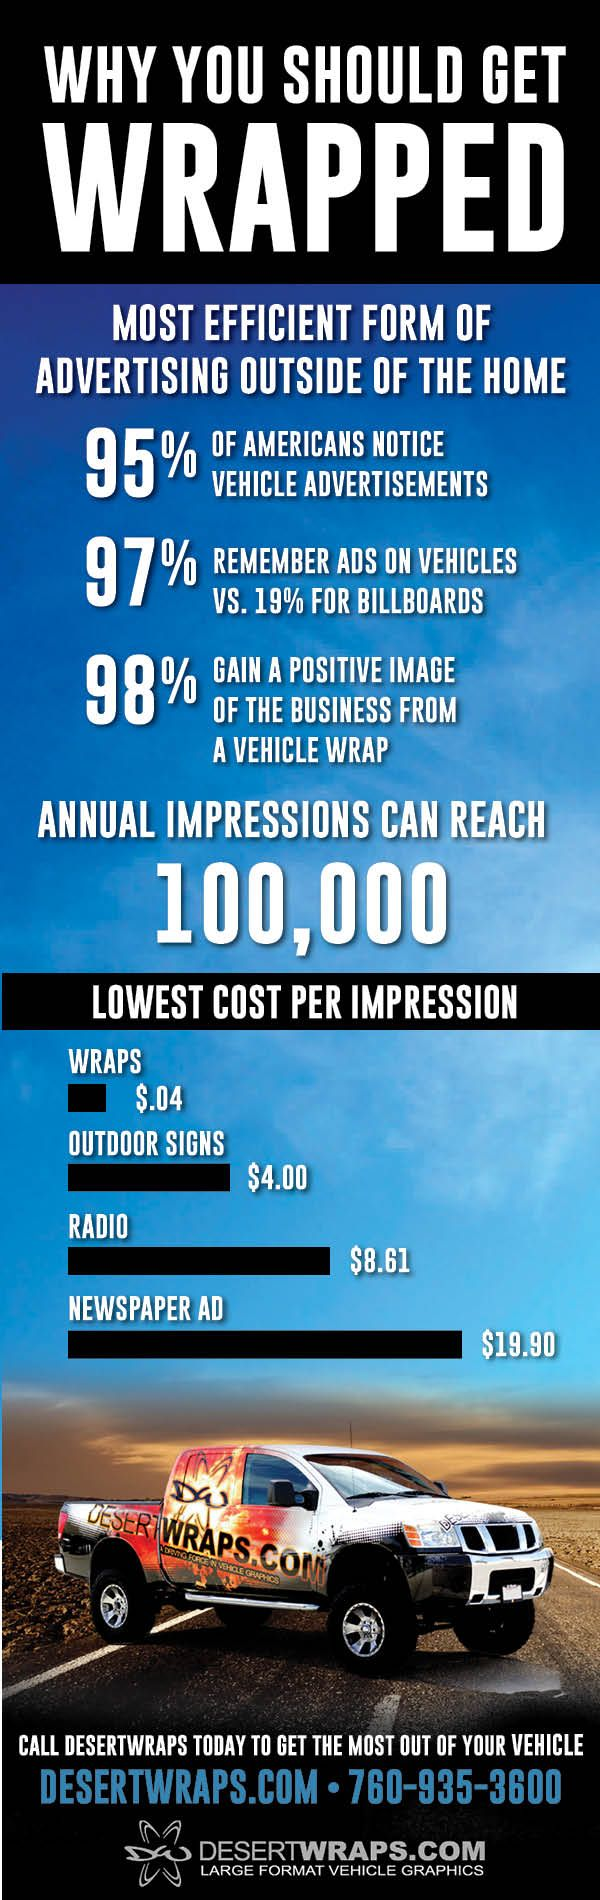 Top reasons why you should get a vehicle wrap!  #vehicle #wrap #vinyl #business #ad #mobilebillboard